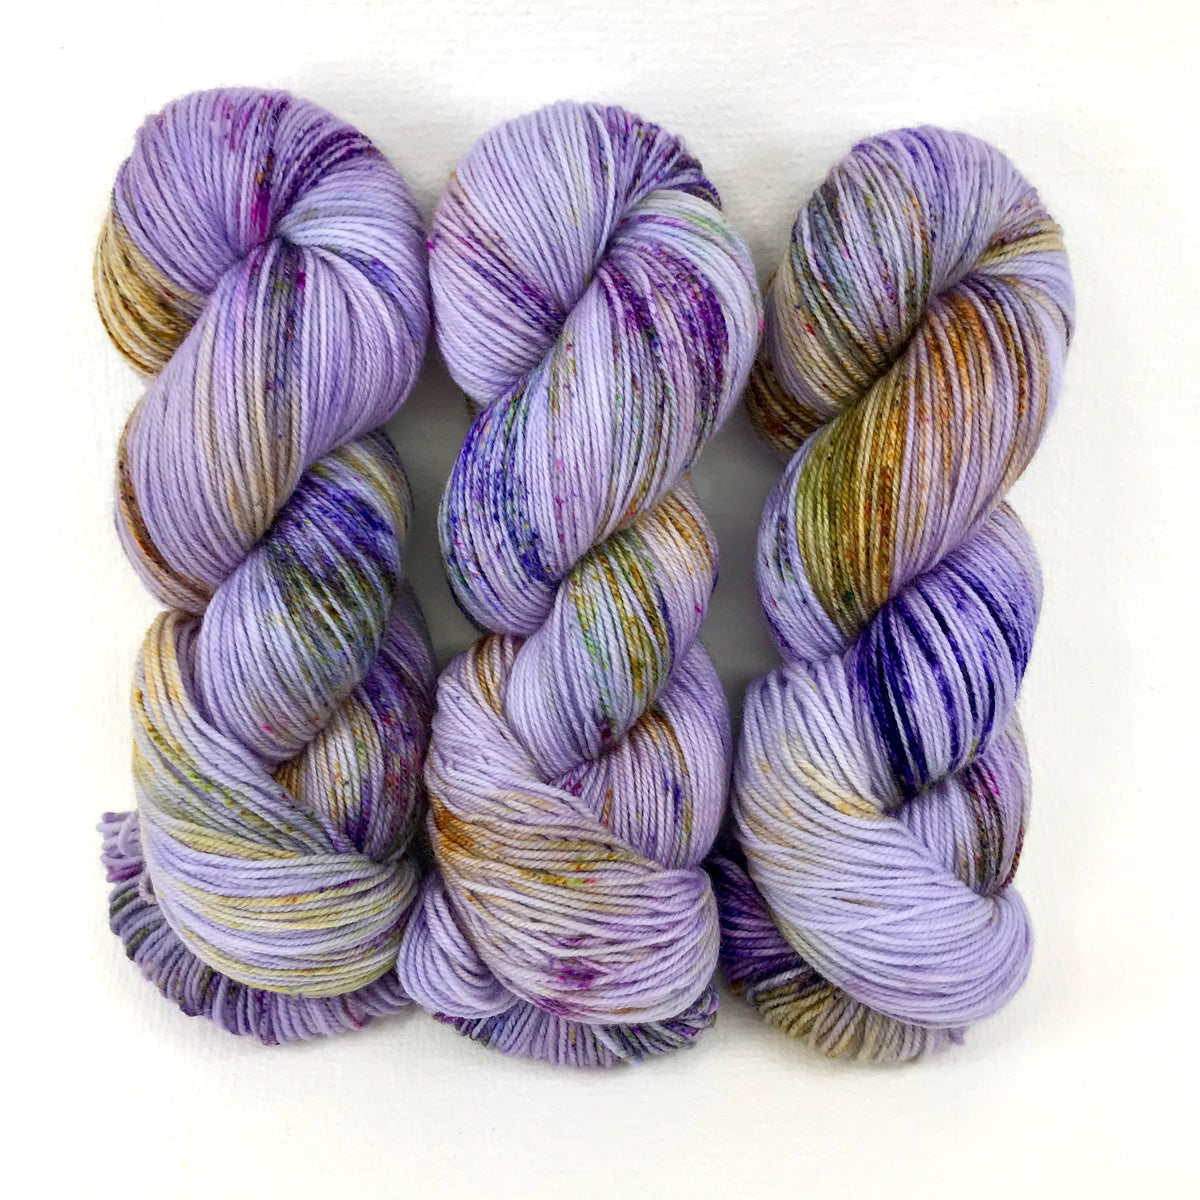 Lavender Fields Forever - Indulgence Lace - Dyed Stock